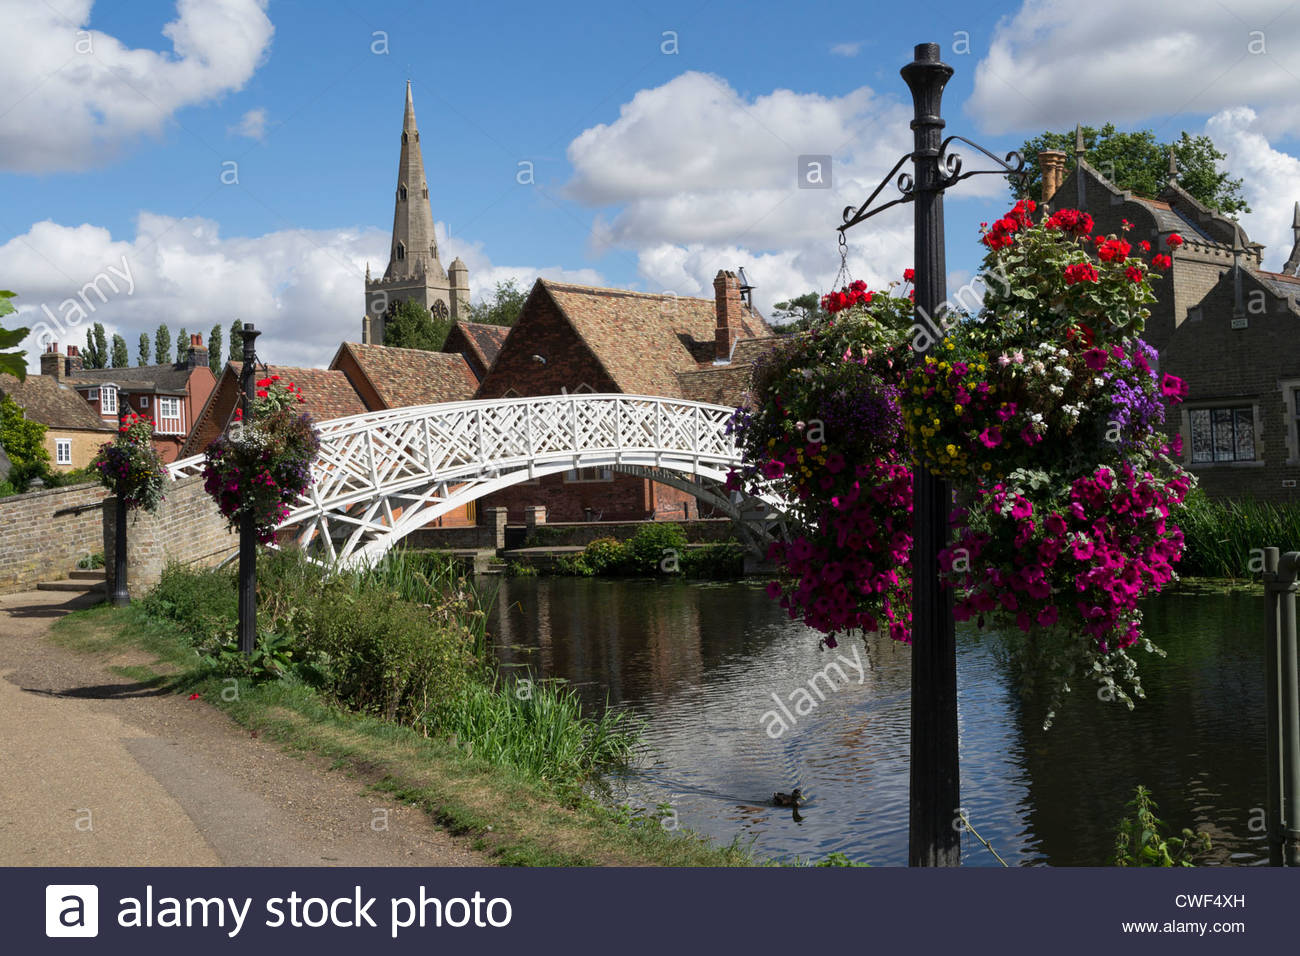 The Chinese Bridge with church spire and hanging baskets in Godmanchester, England - Stock Image